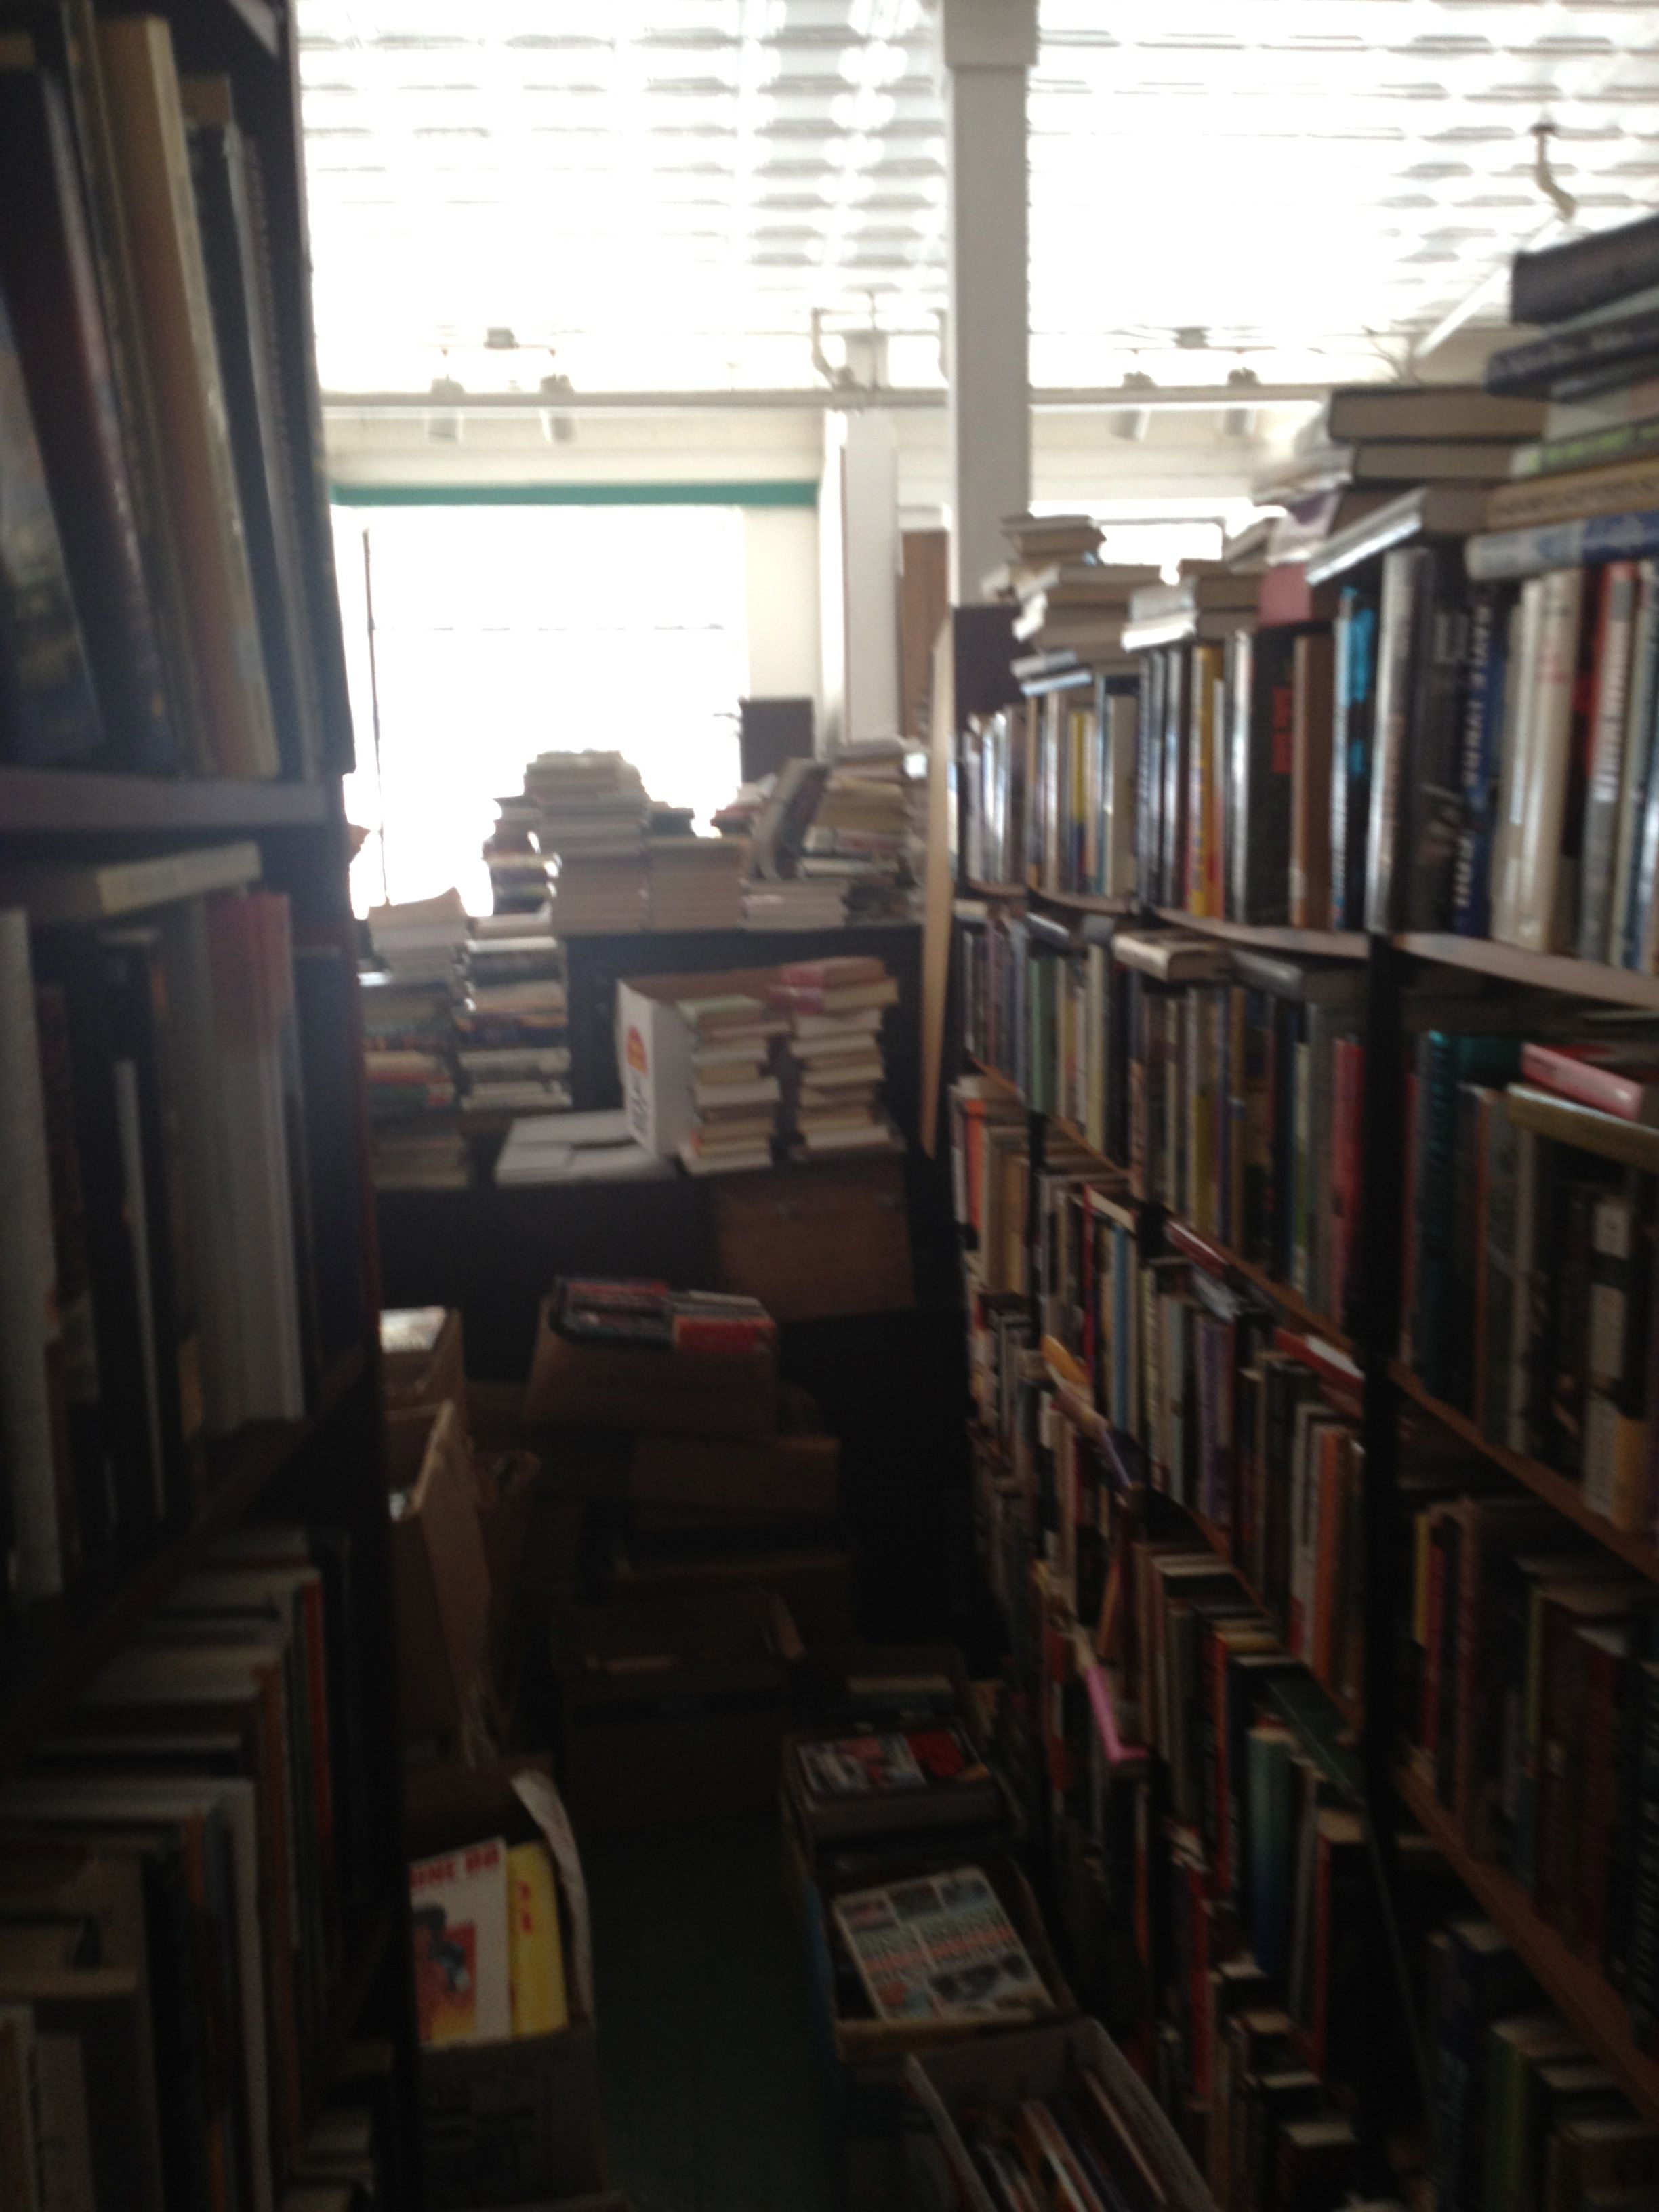 Real Live Piles Of Books! North Star Books, Lincolnton, Nc House Of